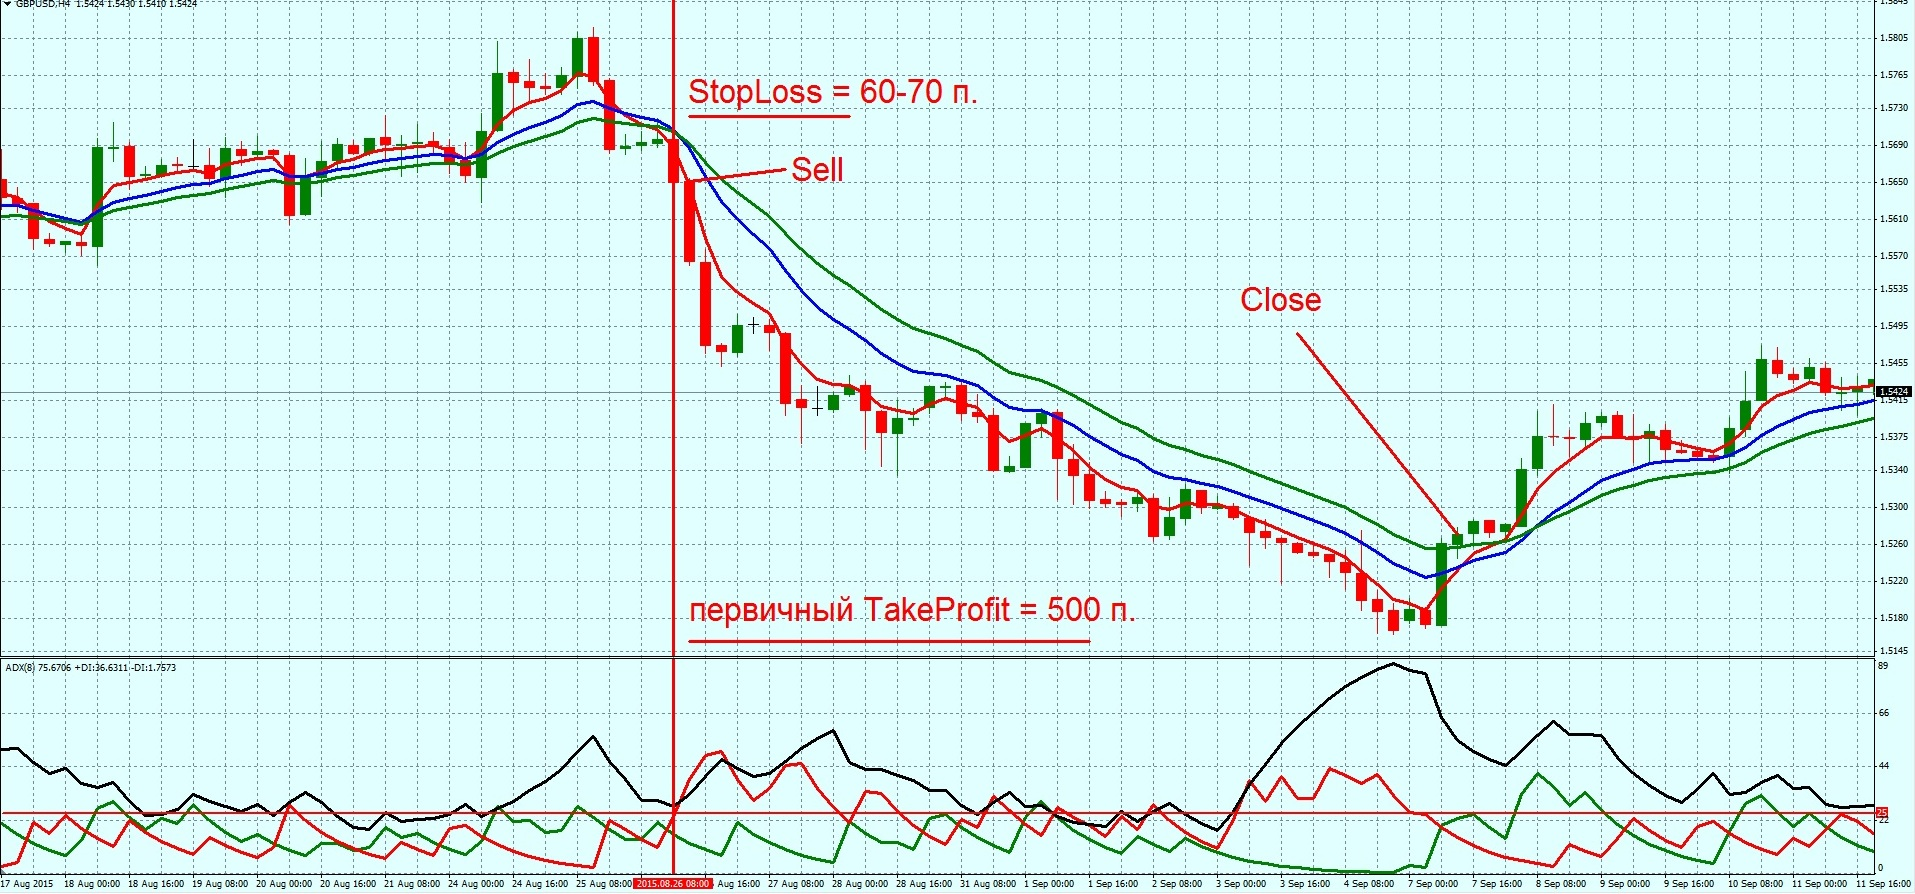 4 h forex strategy waw